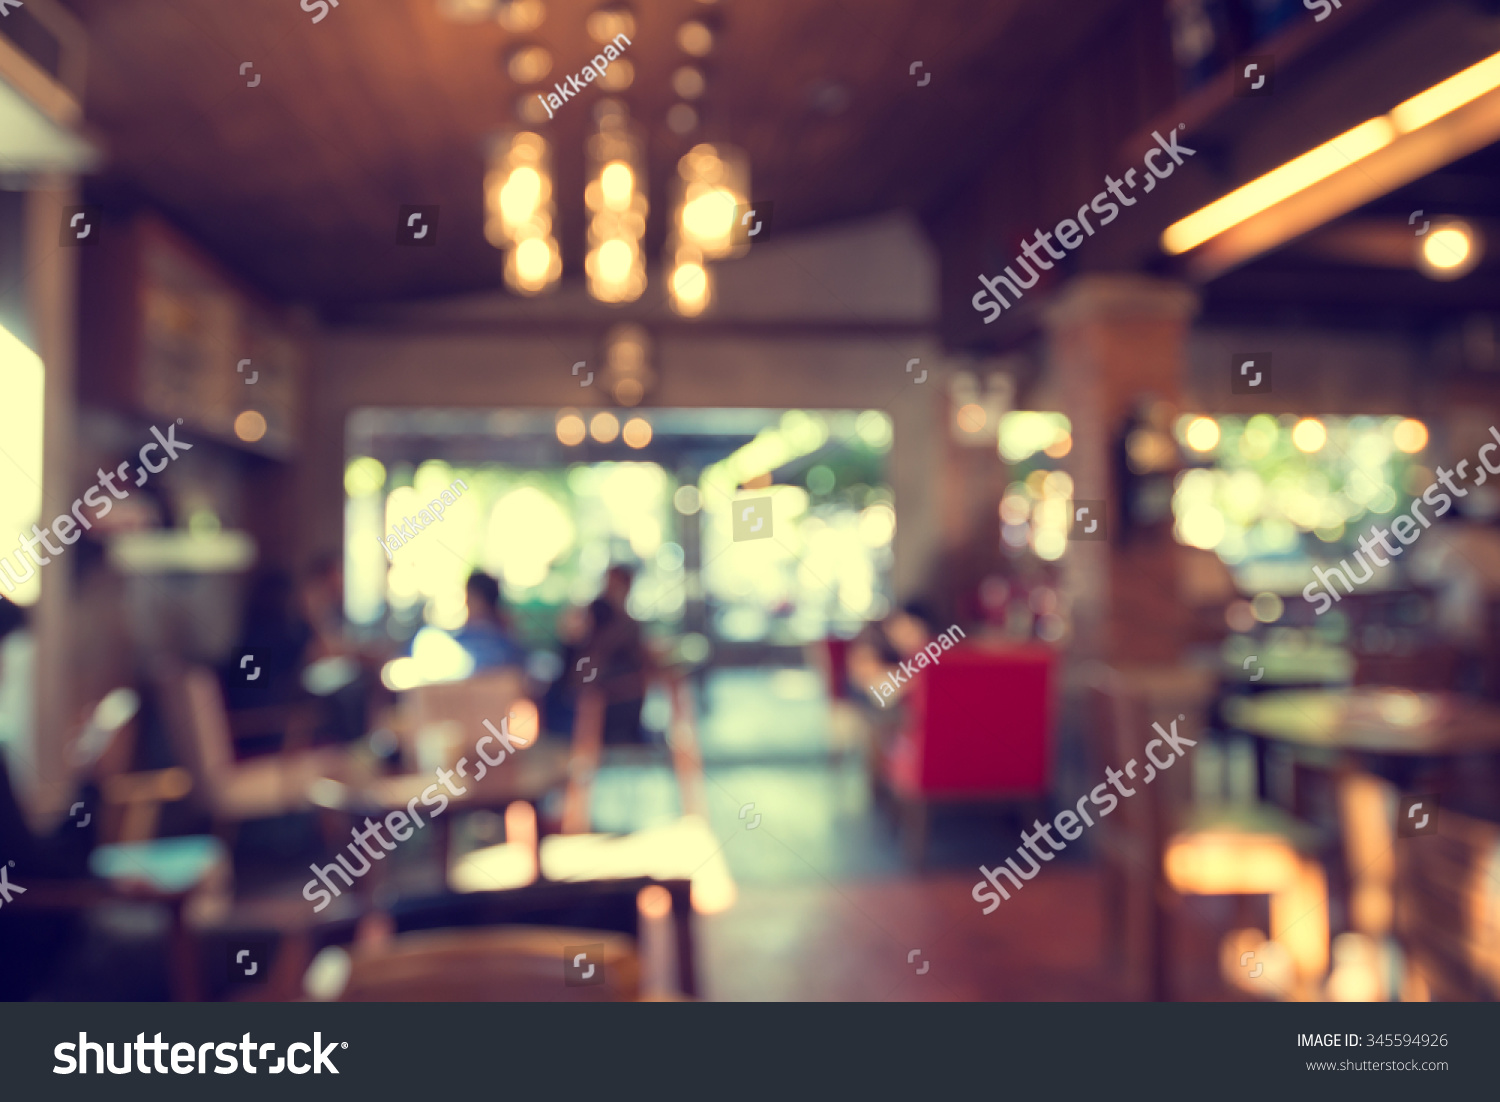 Image Café Blurred Cafe Background Coffee Shop Blur Stock Photo